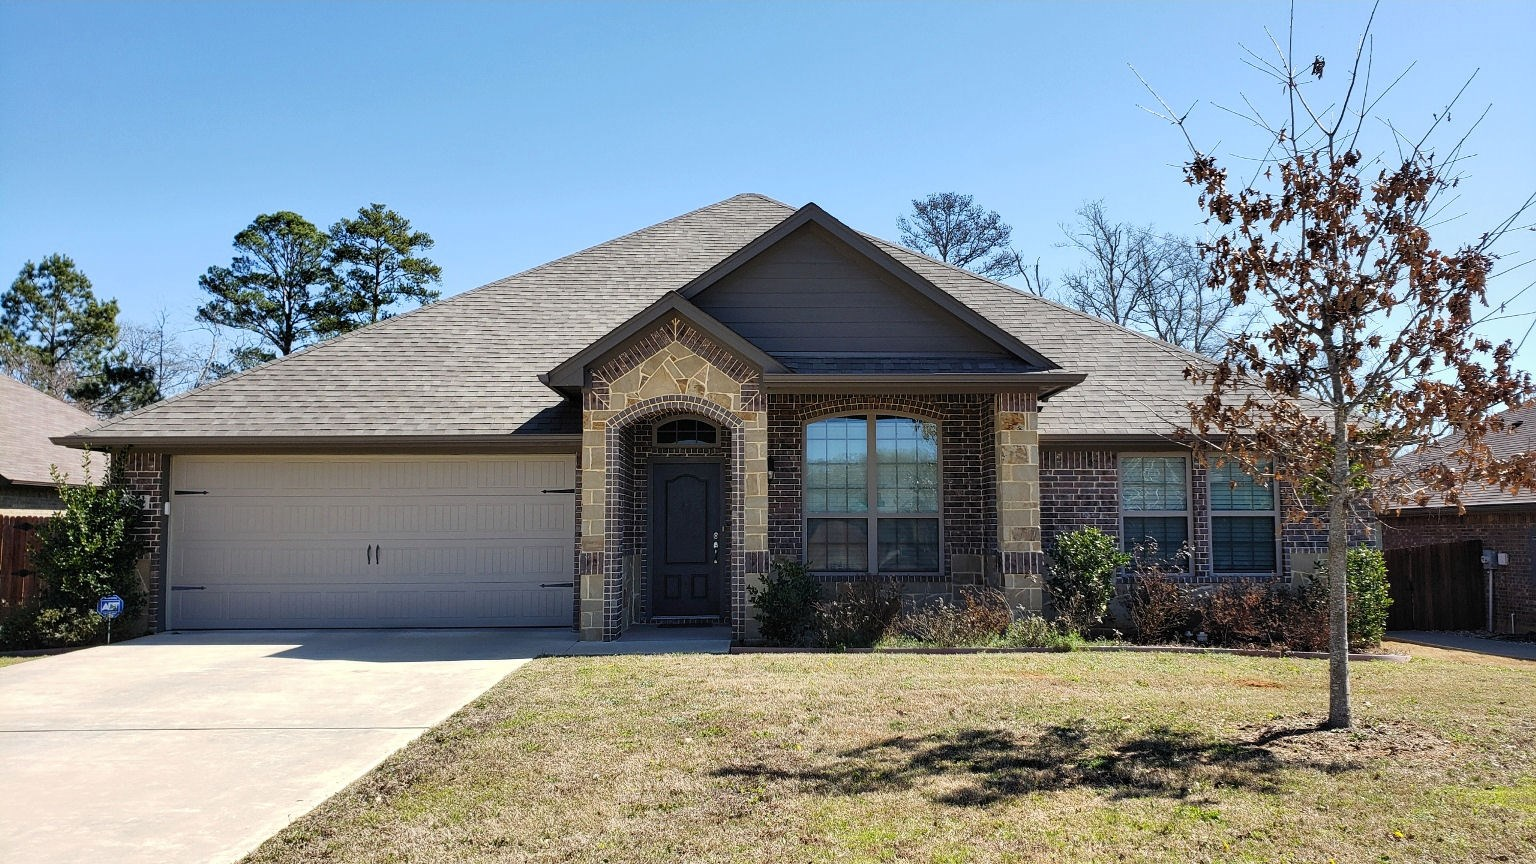 TYLER TX RESIDENTIAL HOME FOR SALE | EAST TX REAL ESTATE